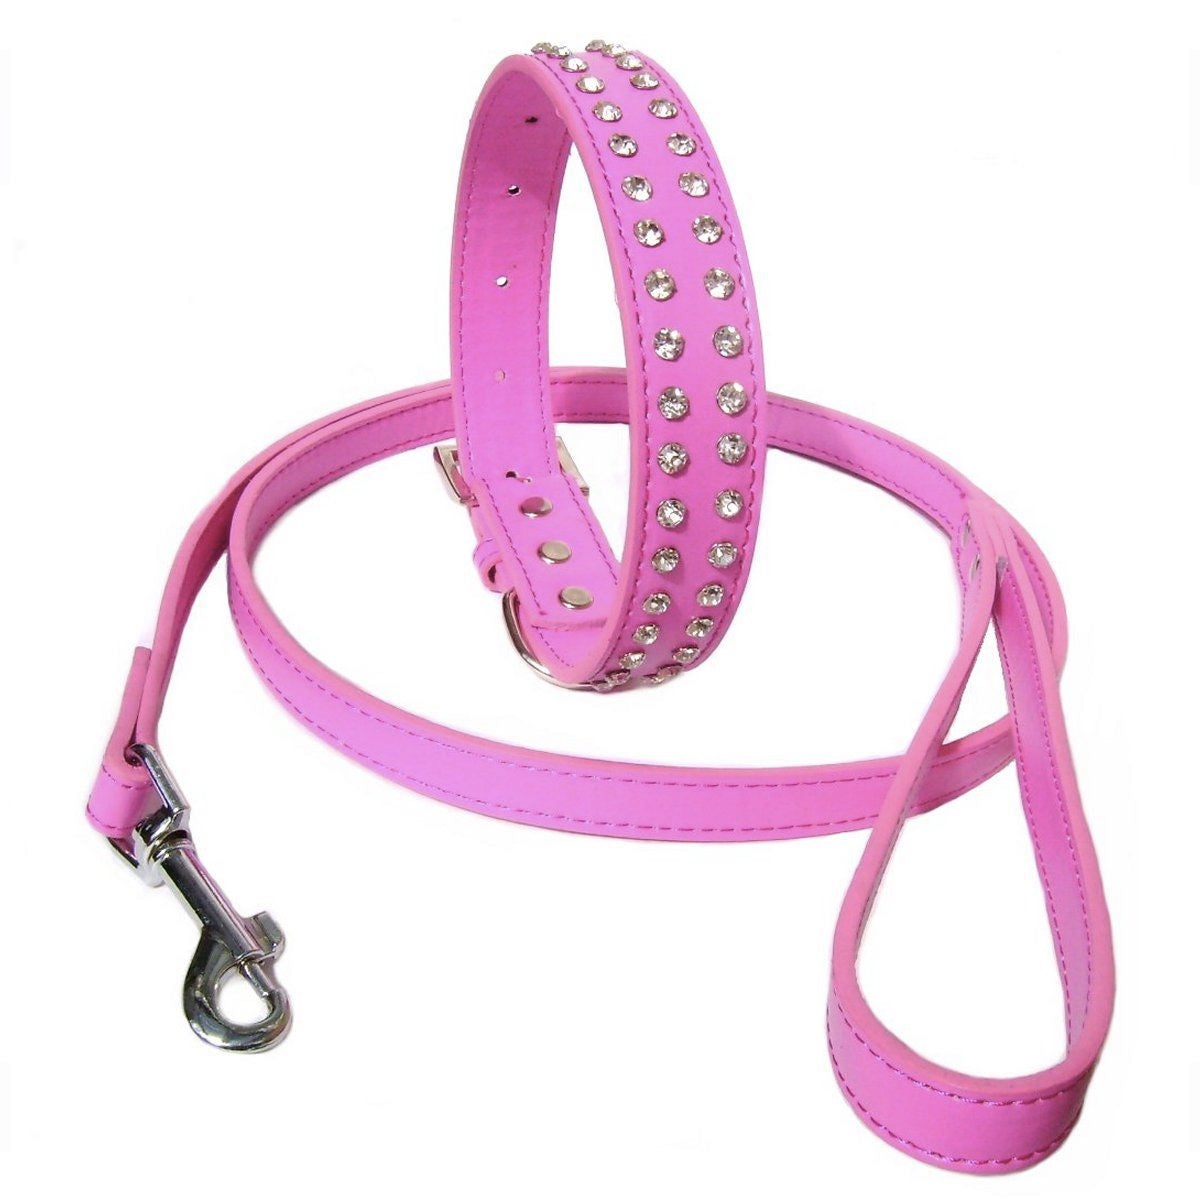 Hot Pink Rhinestone Crystal Dog Collar And Lead Set - Posh Pawz Fashion